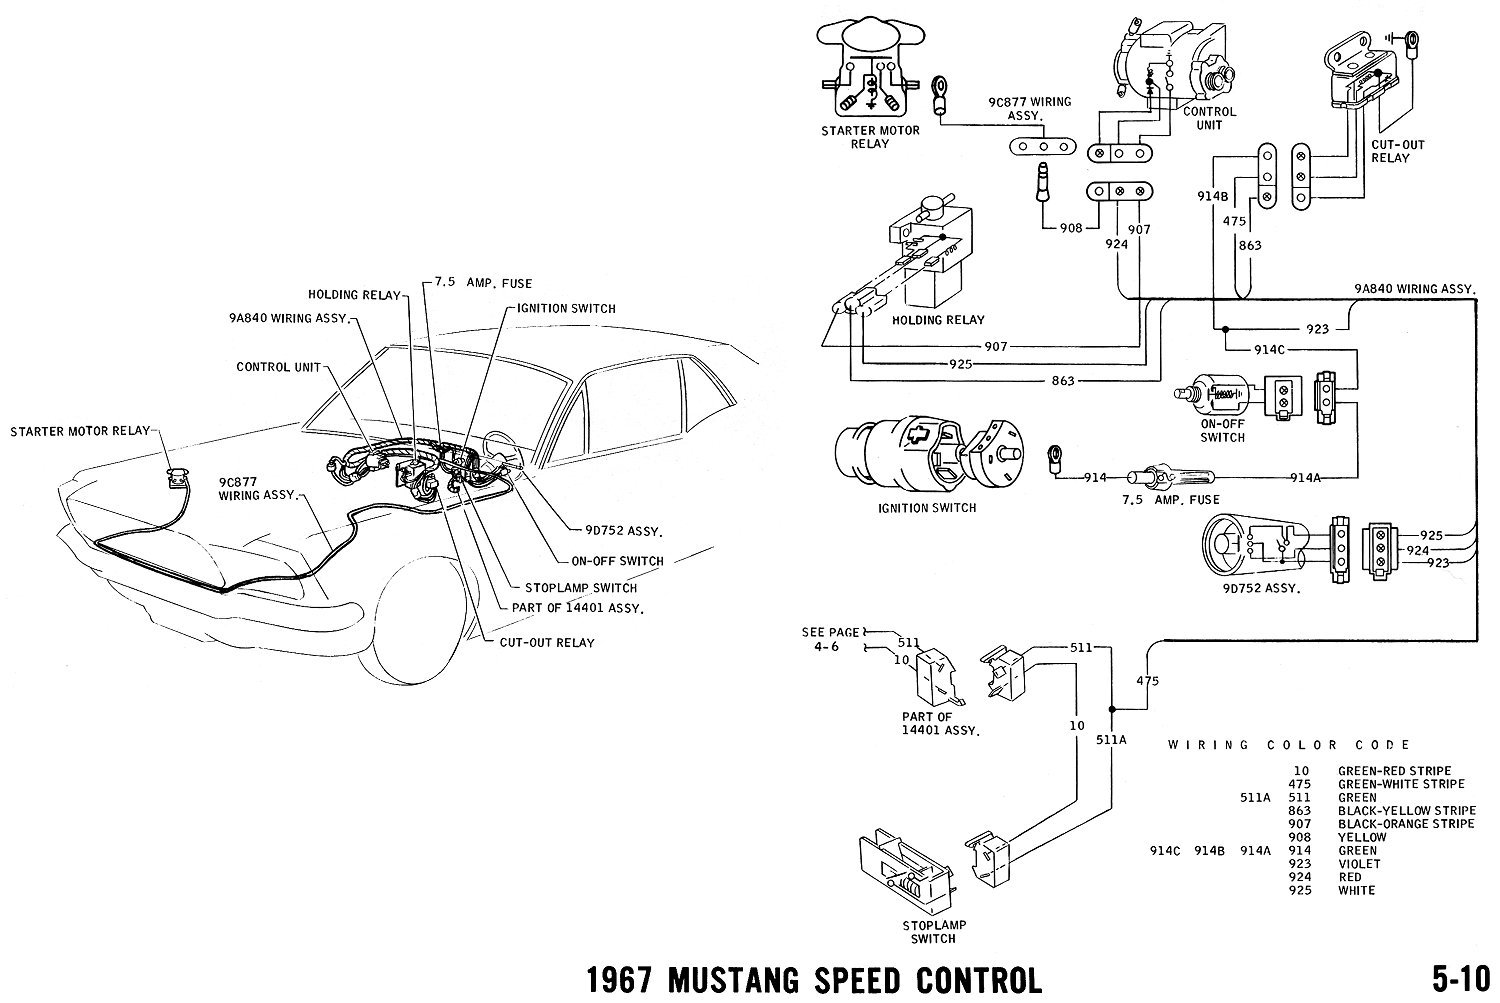 1967 Mustang Speed Control. Pictorial and Schematic Vacuum Diagram